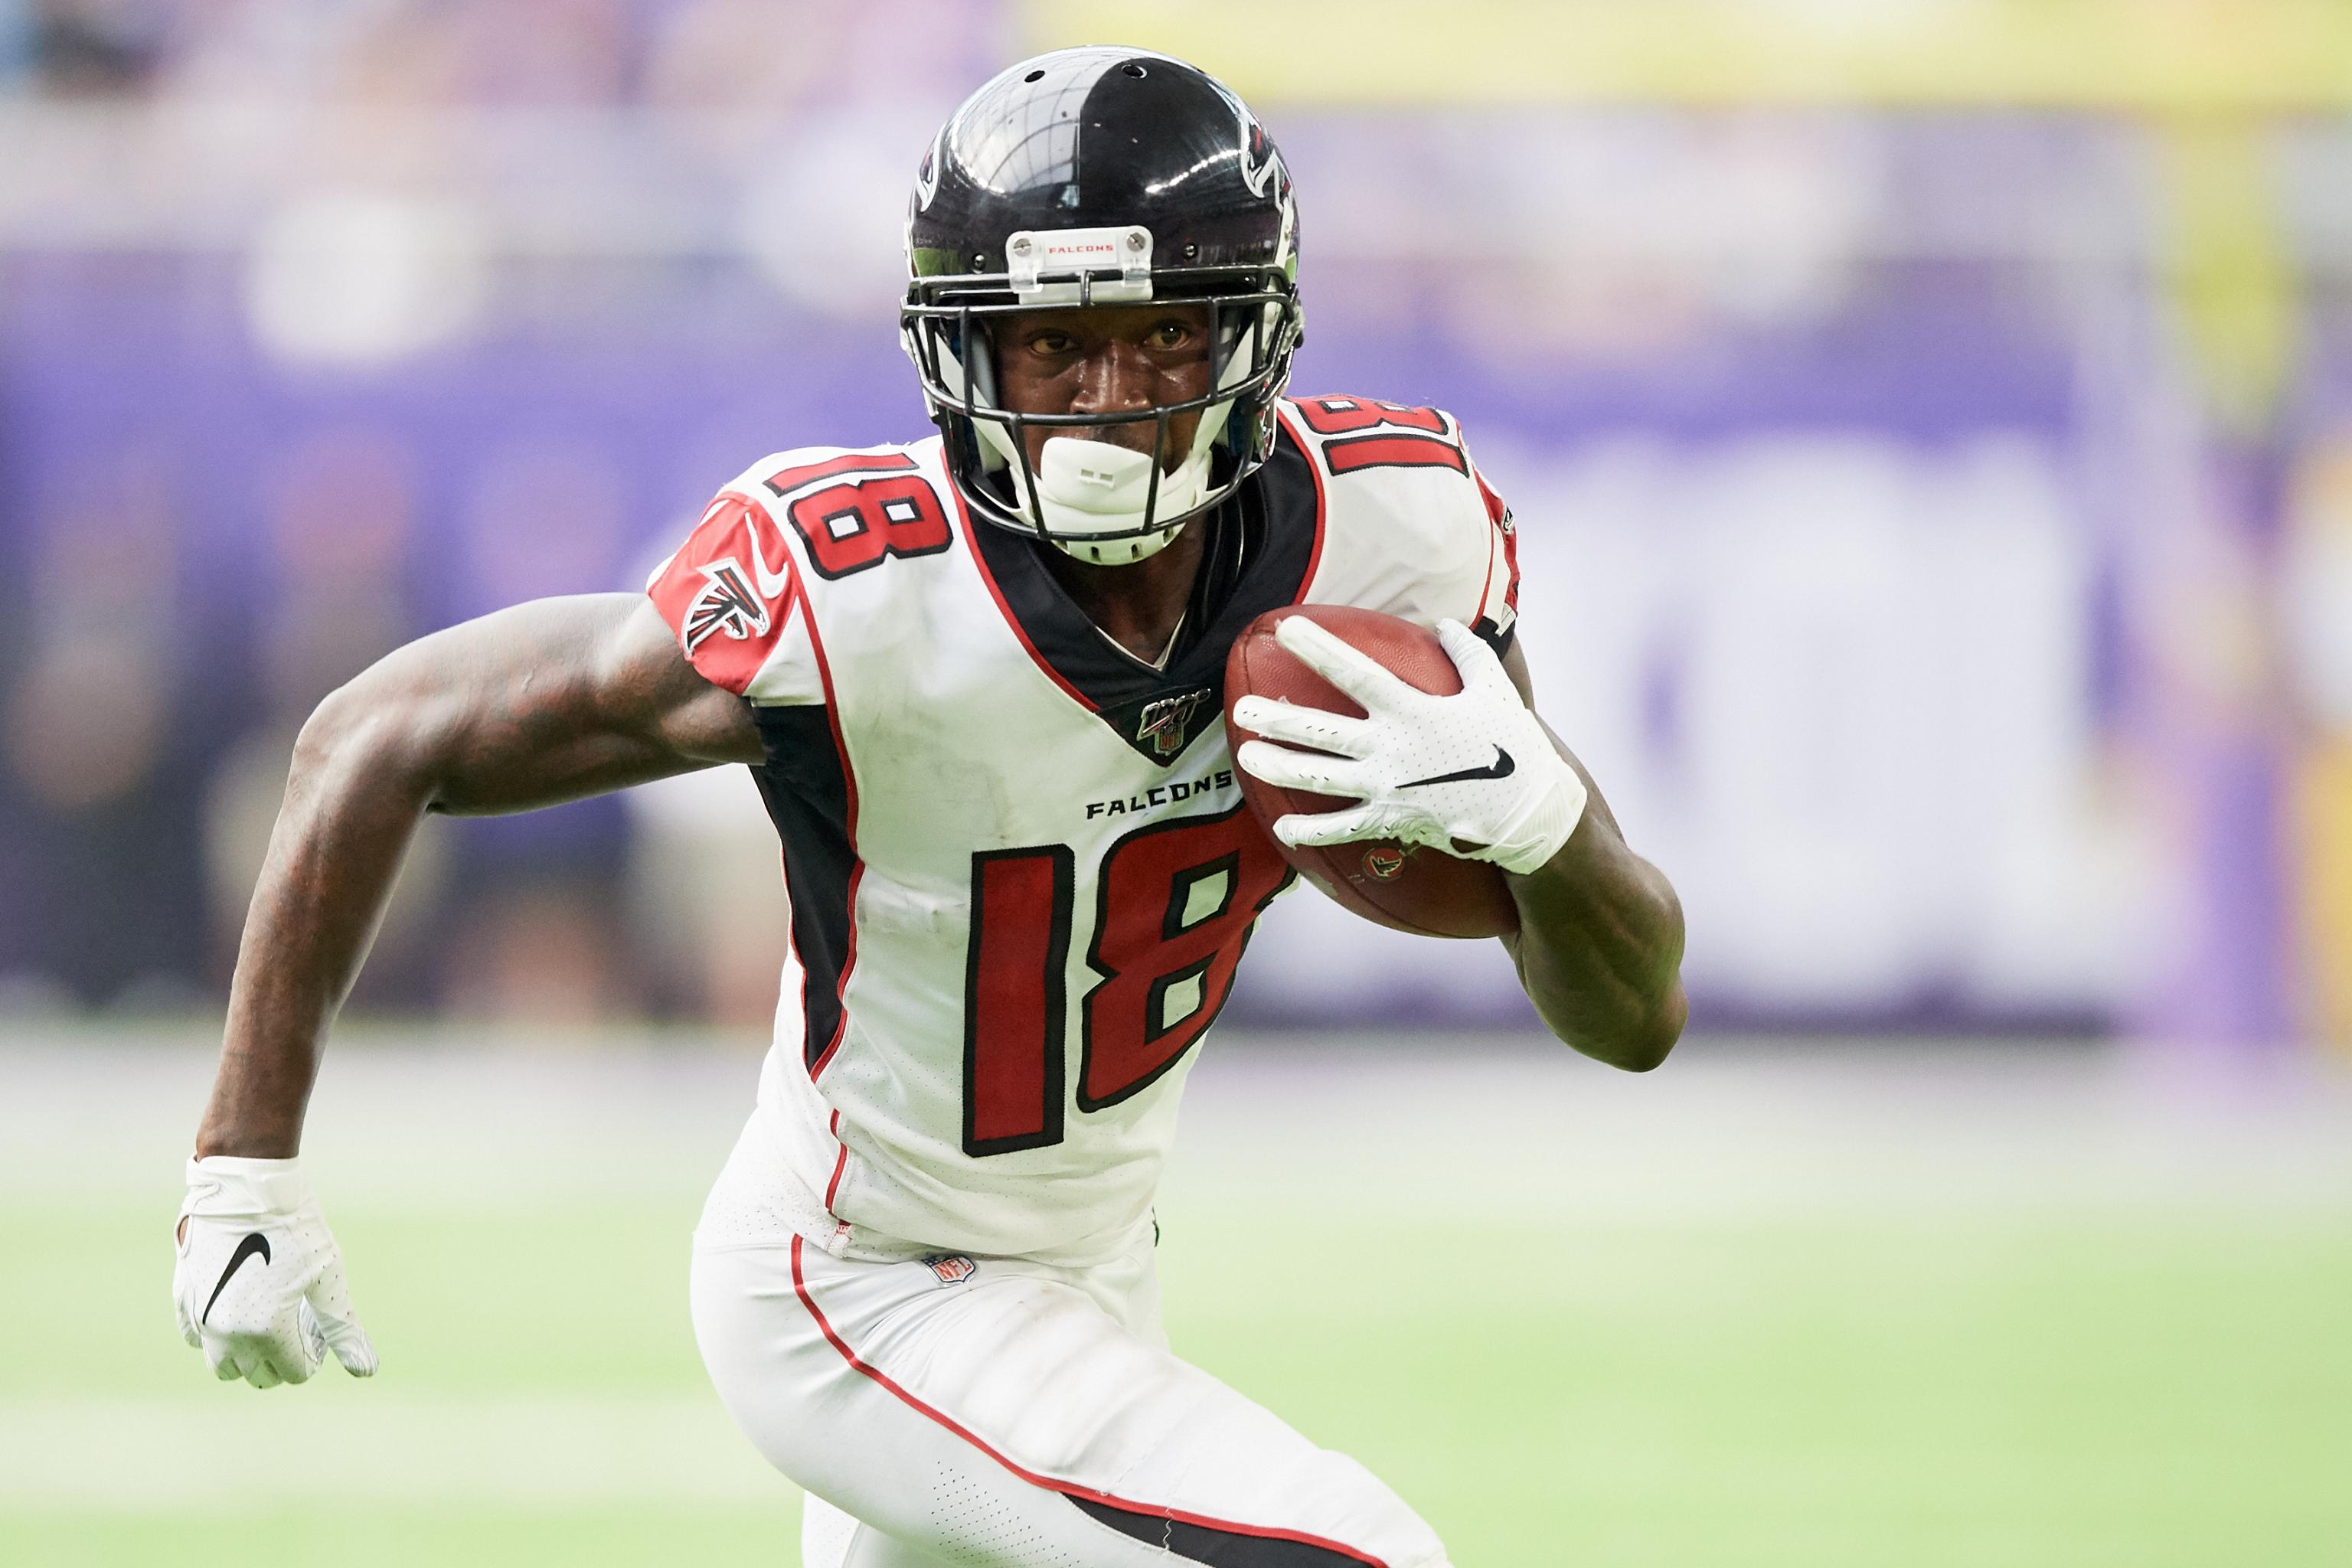 Falcons Calvin Ridley Out Vs Panthers With Abdominal Injury Scored Td In Game Bleacher Report Latest News Videos And Highlights